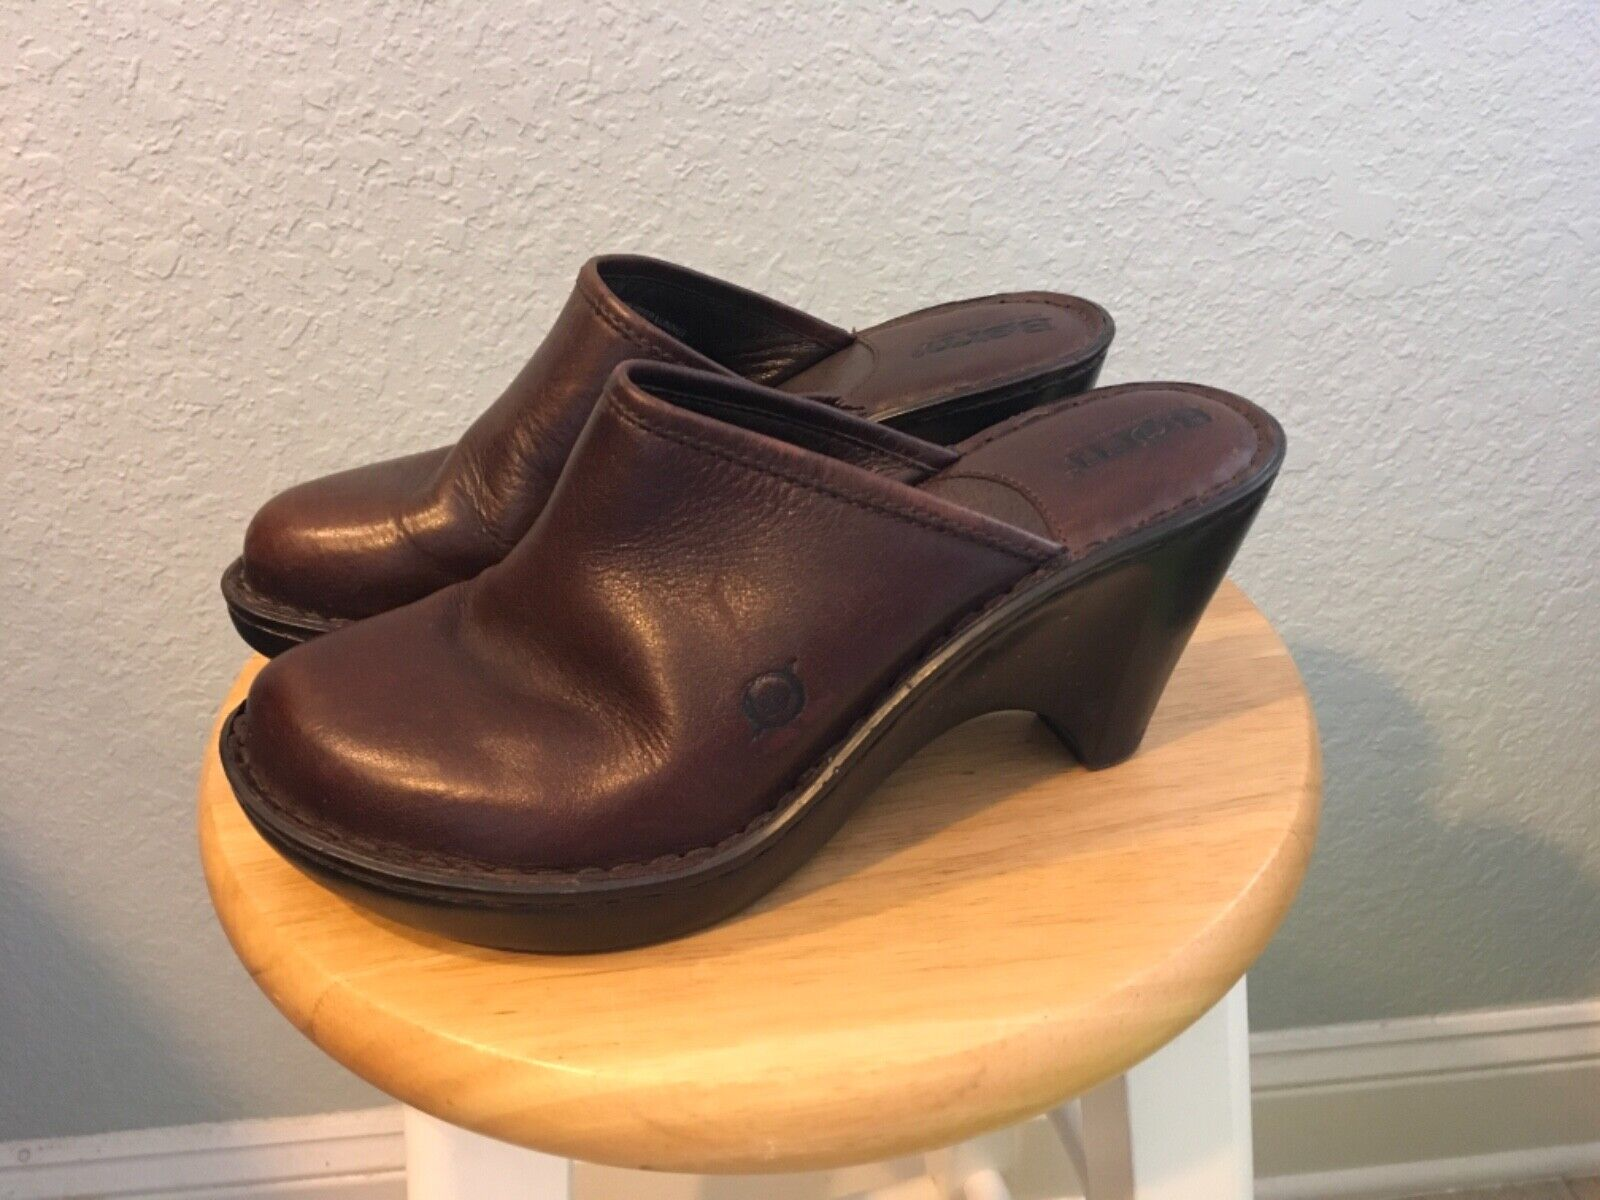 Born Brown Leather Slip On Clogs/Mules - Women's Shoes Size 7